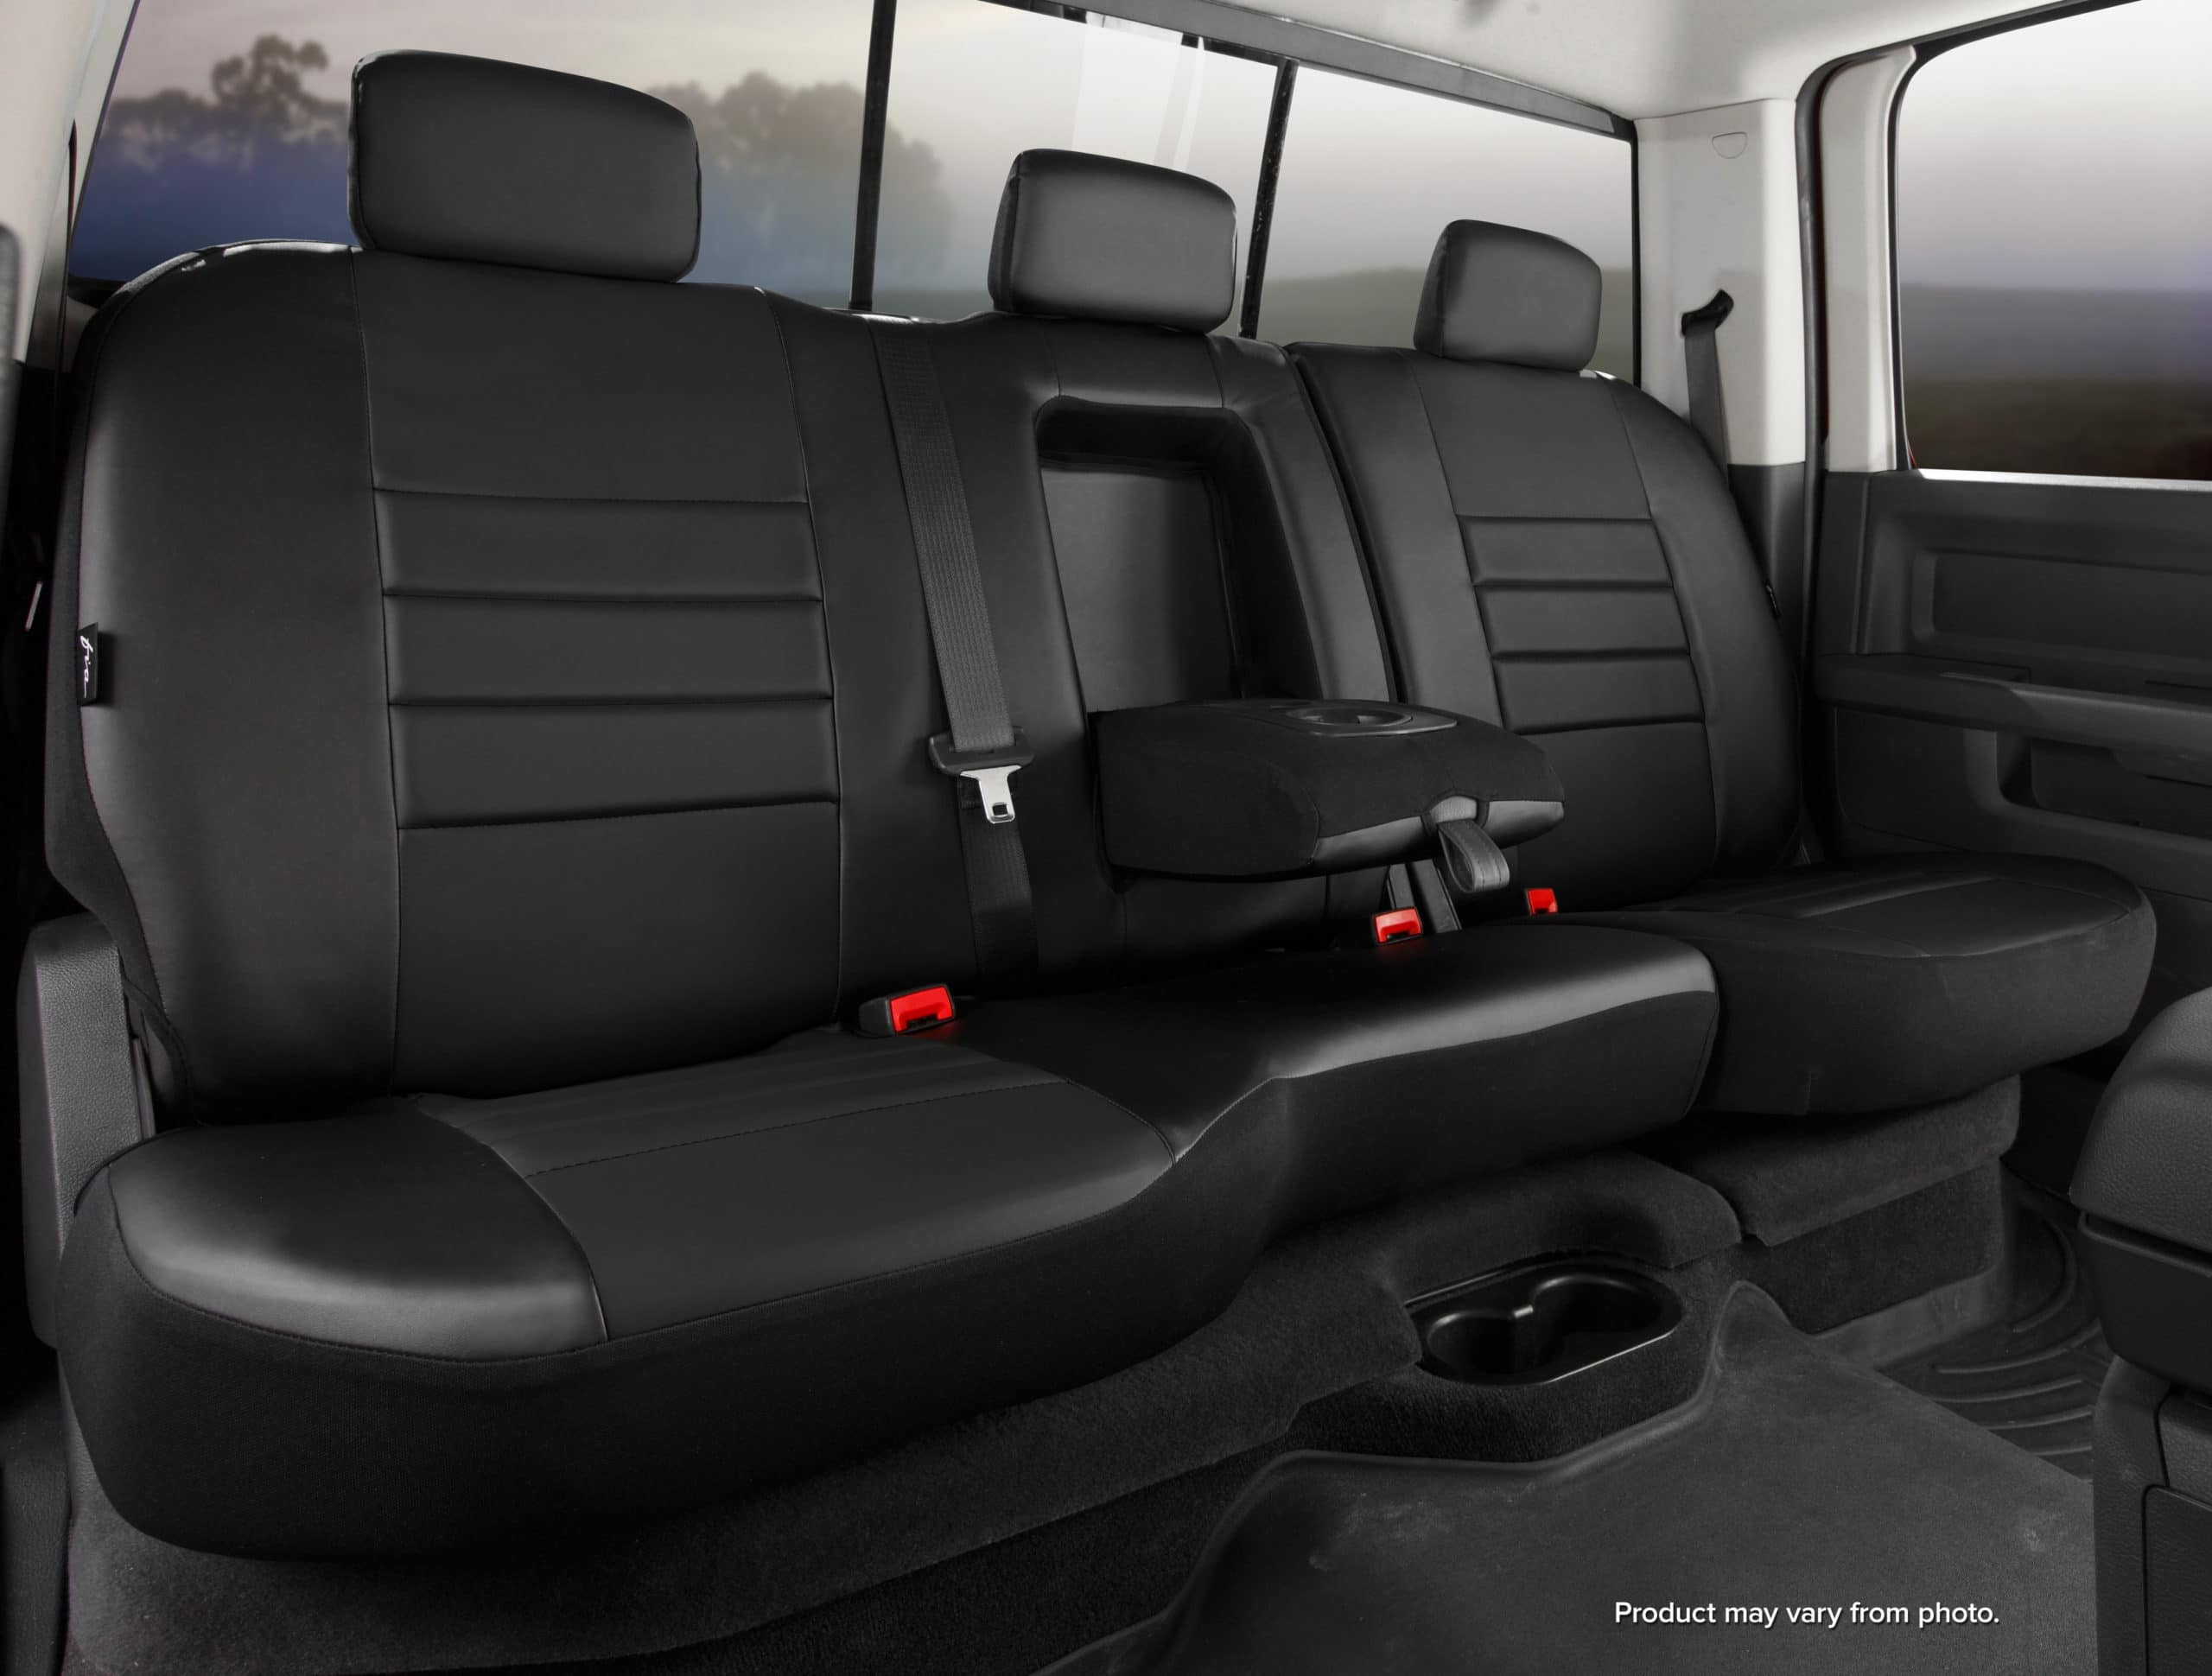 Fia Black Leather Rear Seat Covers